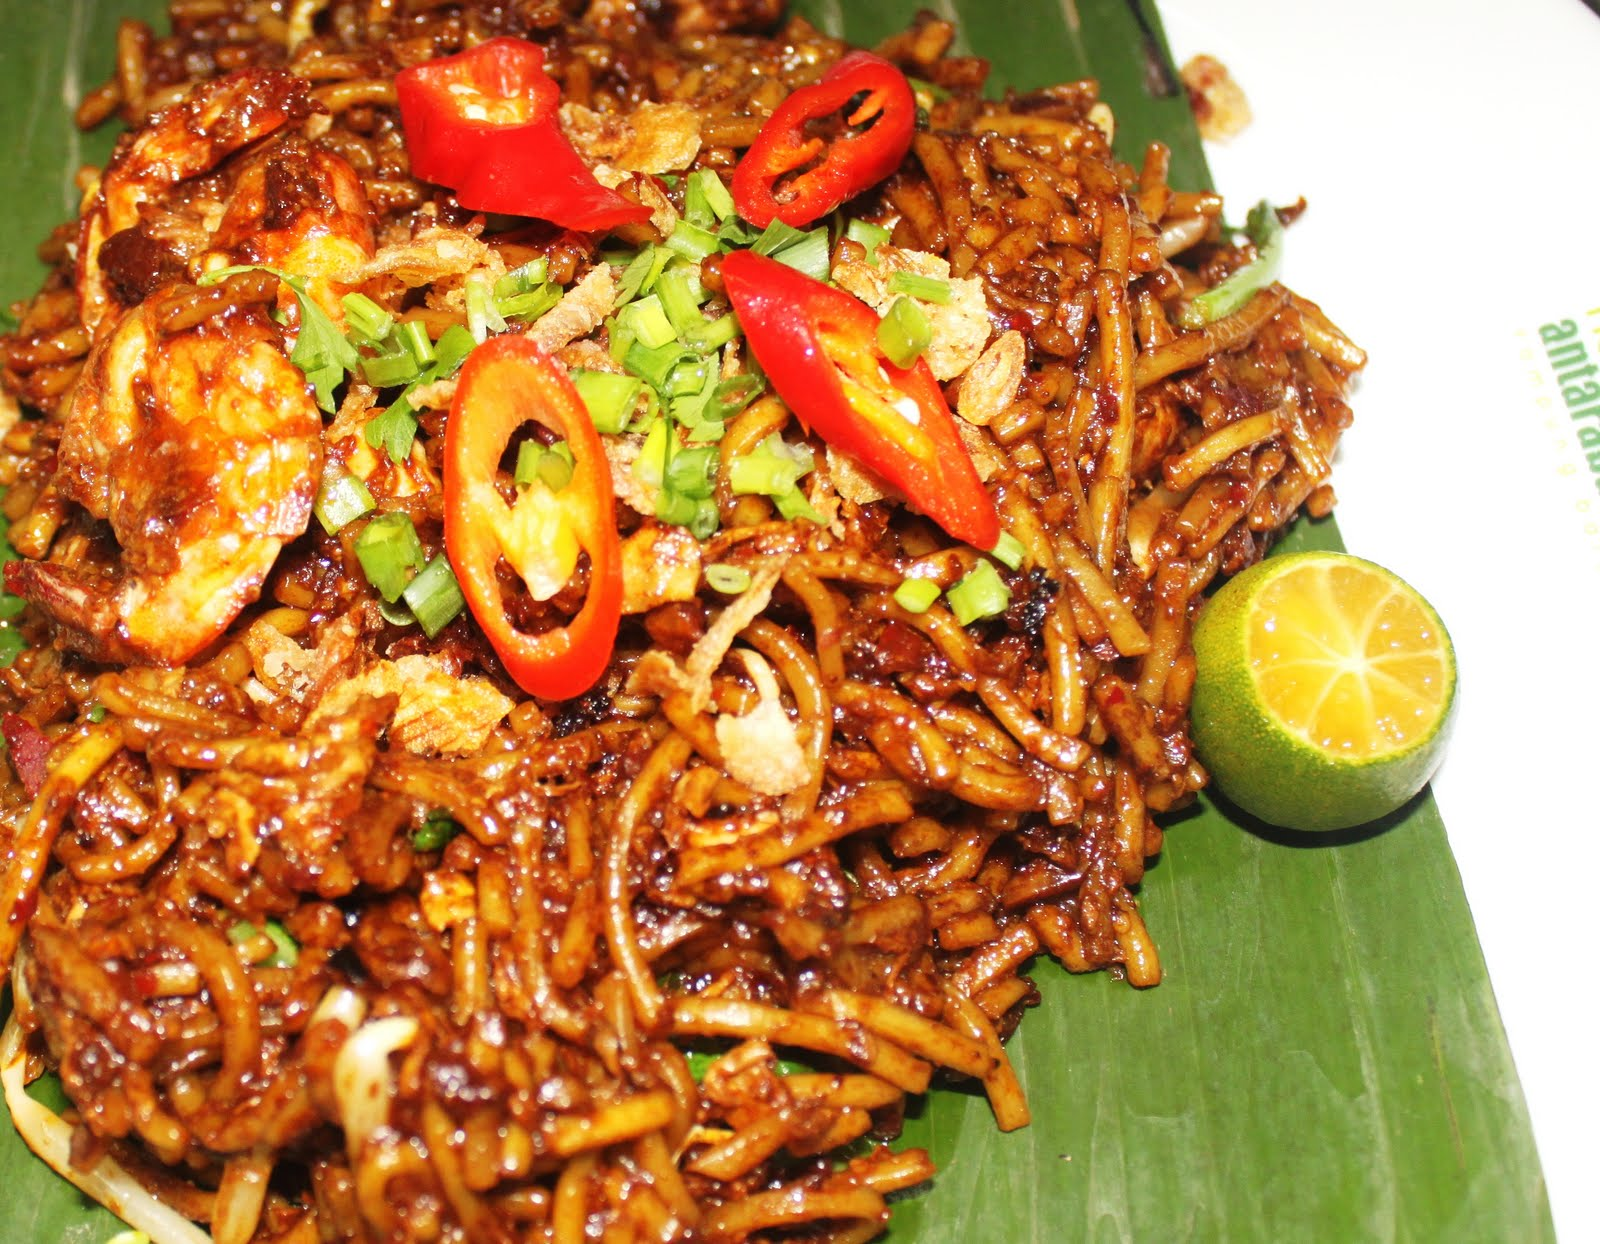 These Have To Be The Best Mee Goreng In Malaysia. Right?